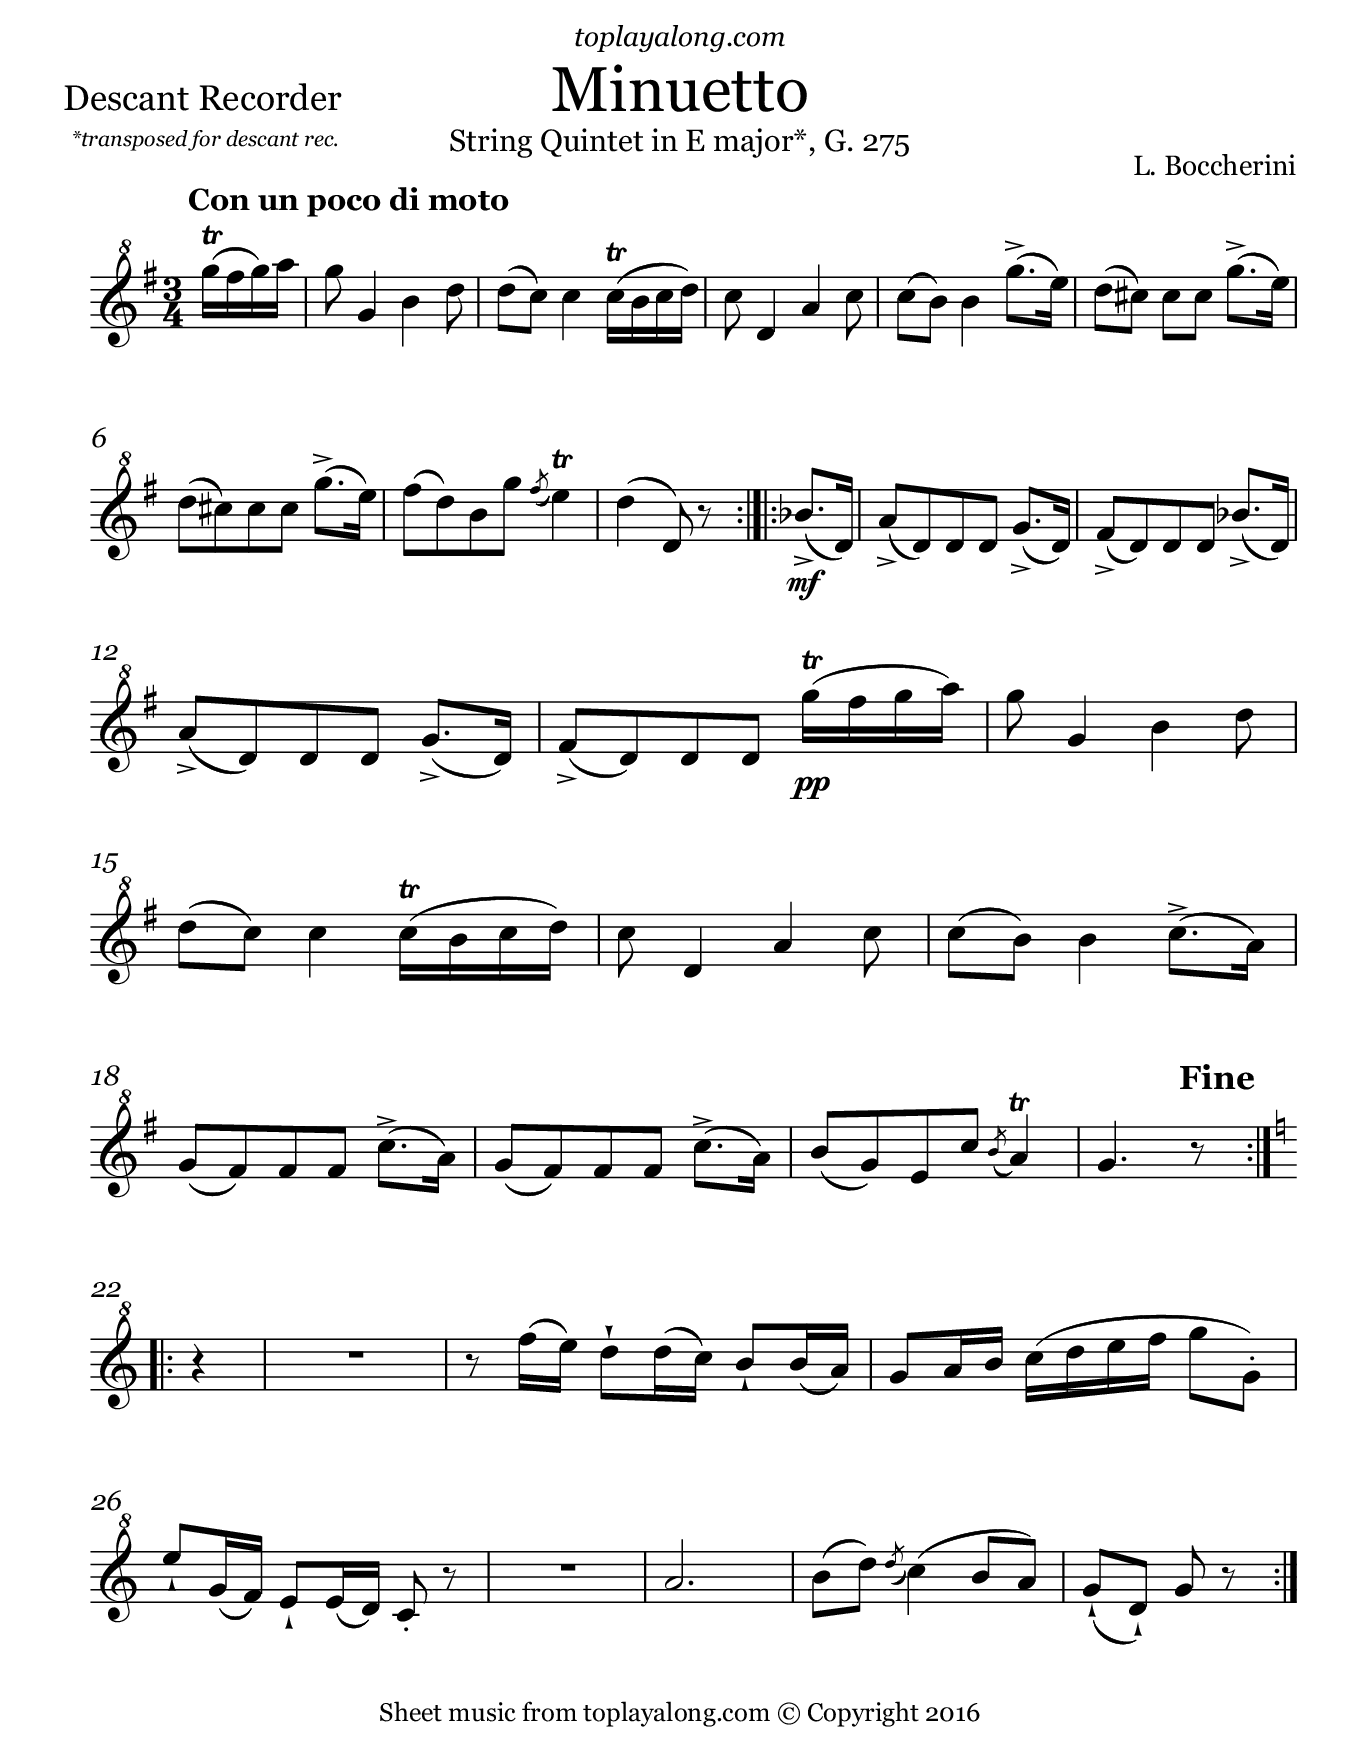 Minuetto from String Quintet in E major by Boccherini. Sheet music for Recorder, page 1.